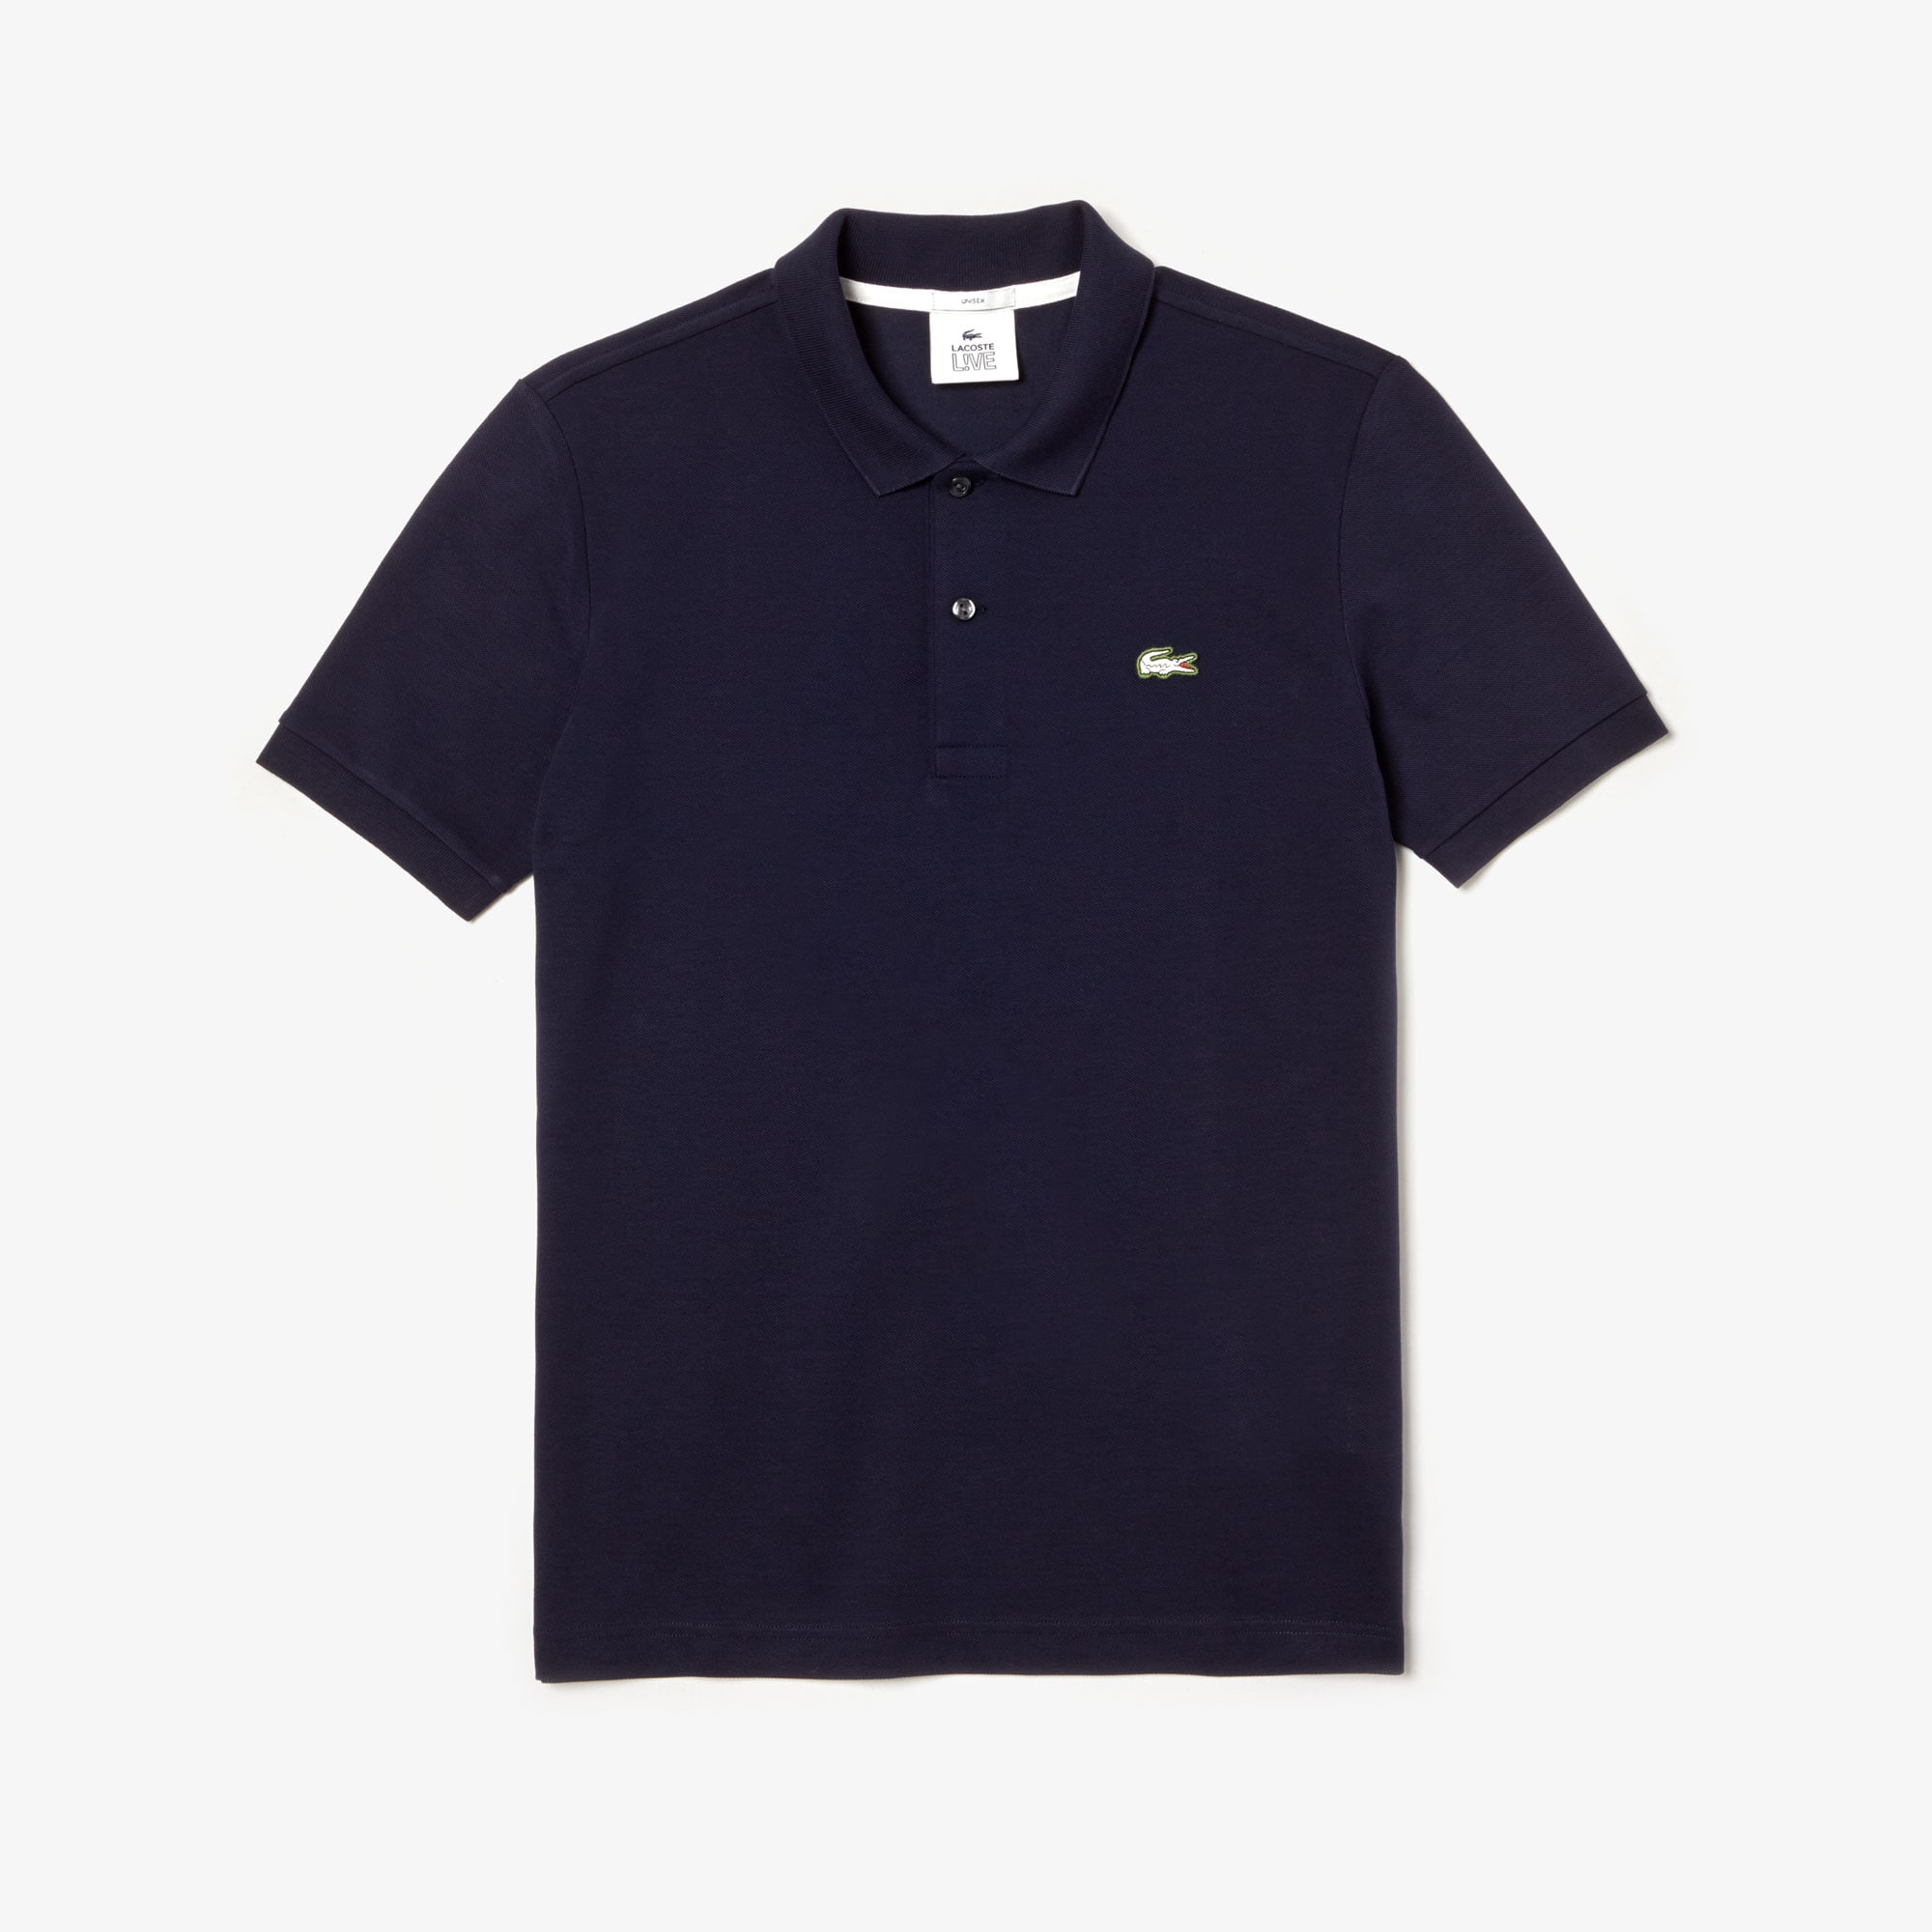 Unisex Lacoste LIVE Slim Fit Stretch Cotton Piqué Polo Shirt